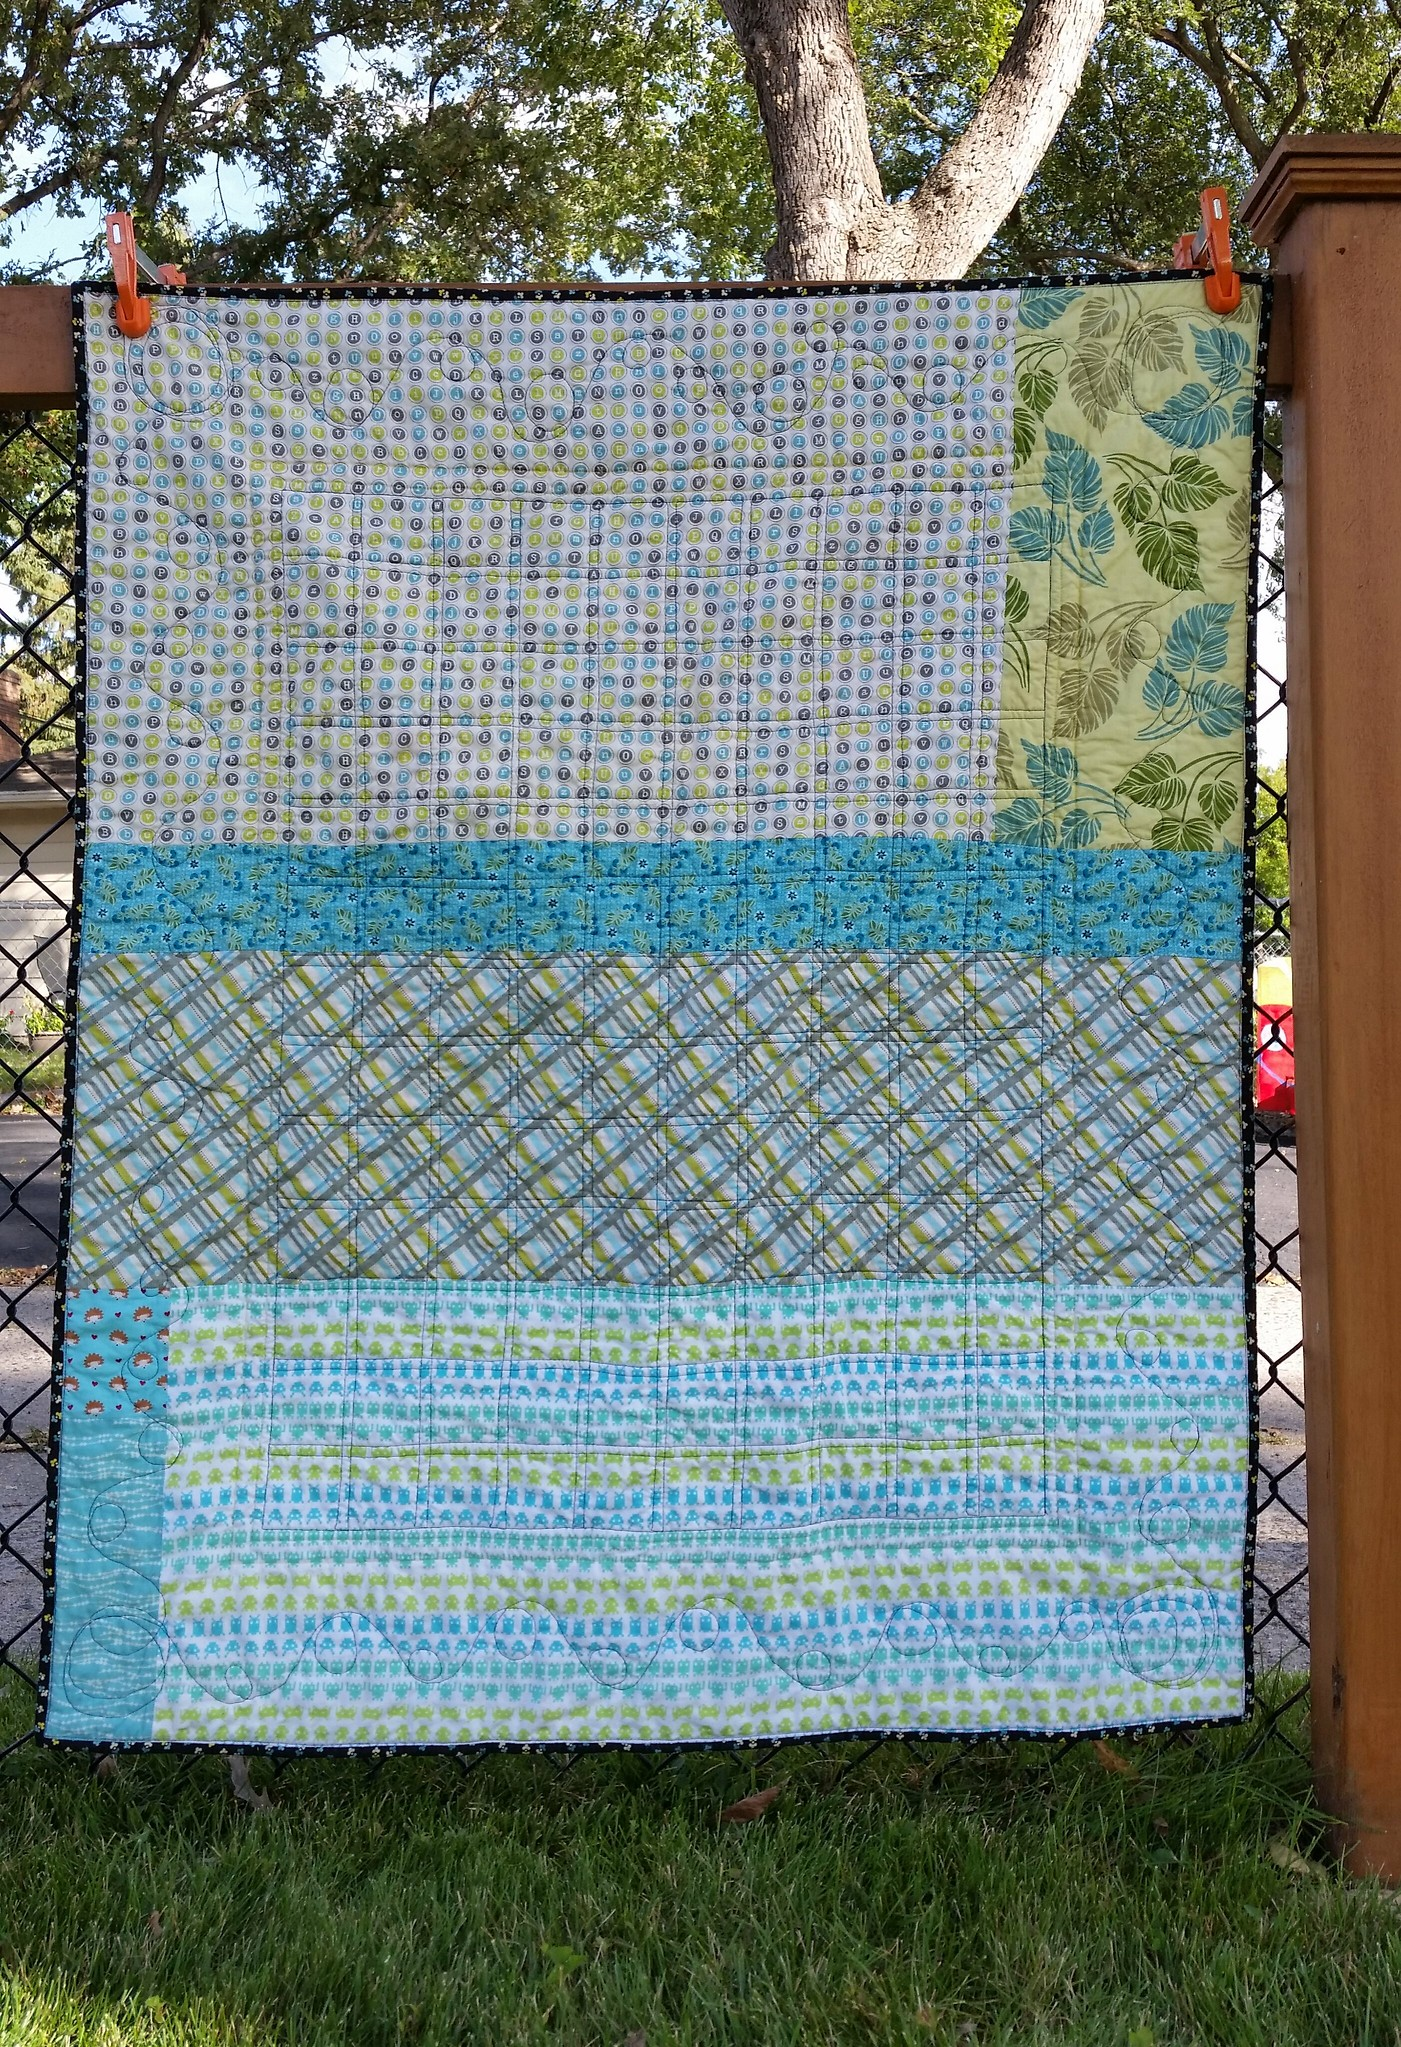 Back of the I-Spy quilt